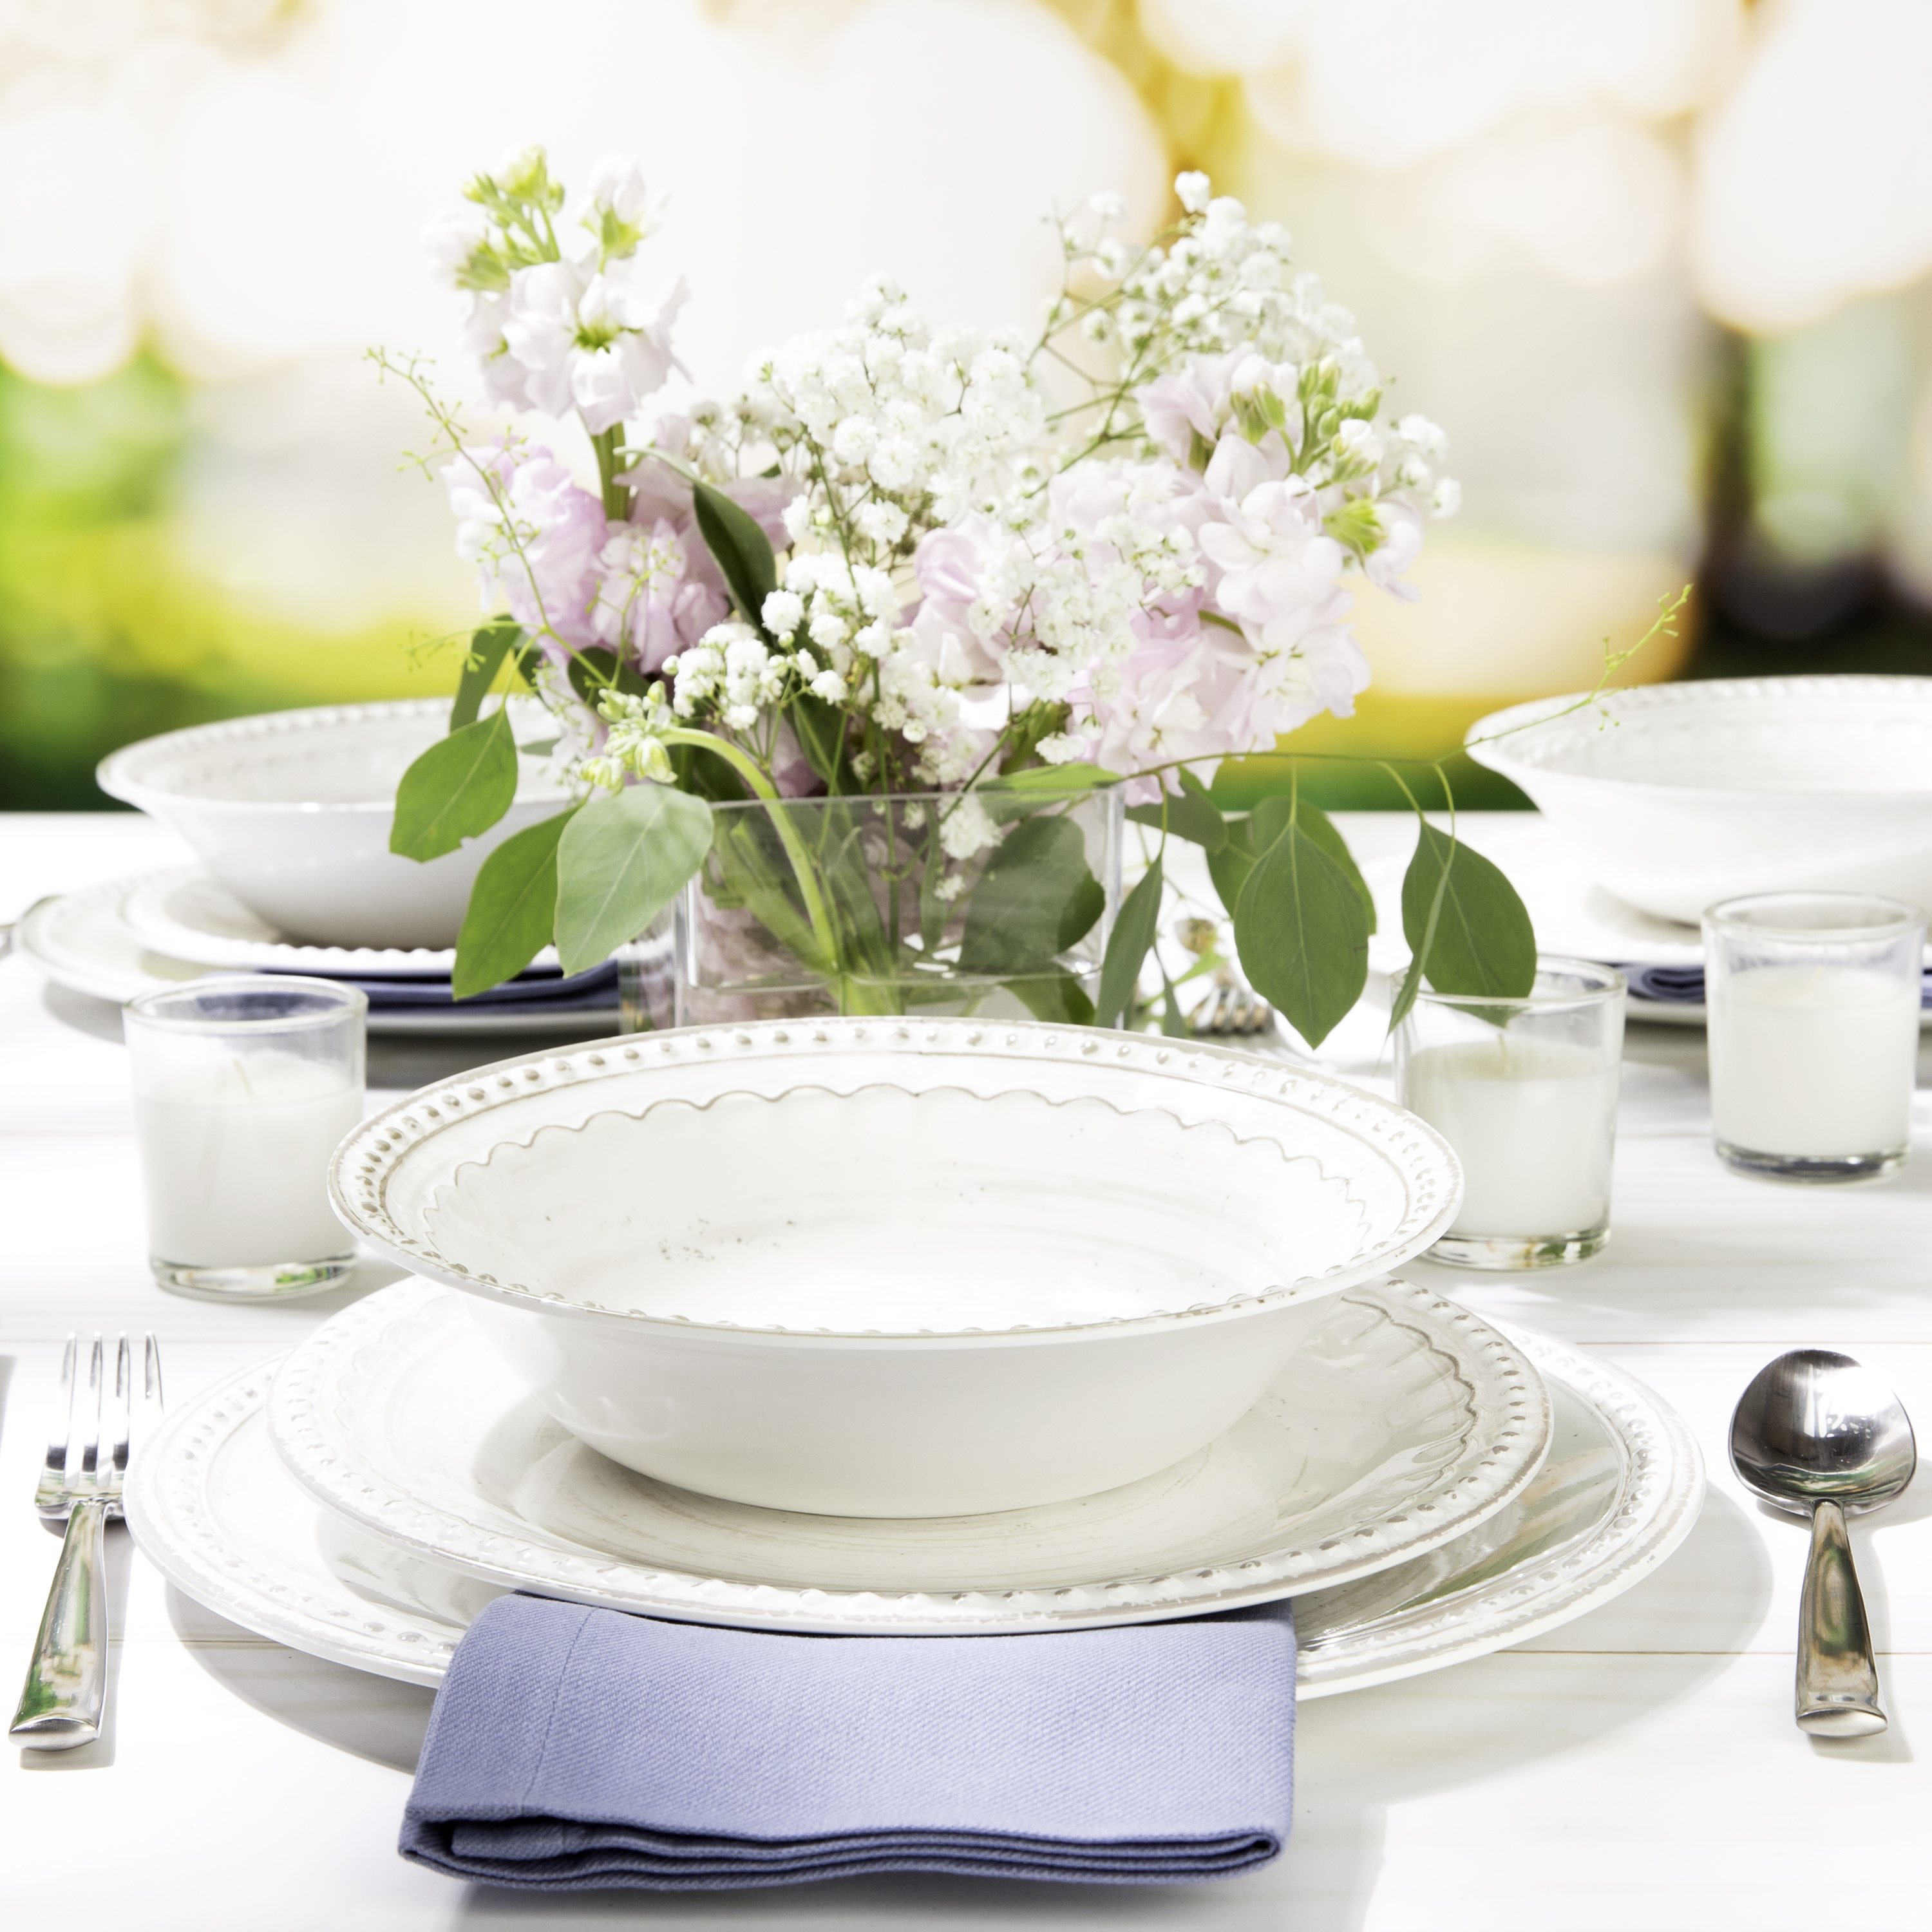 French Country Plate & Bowl Sets, White, 12-piece set slideshow image 10